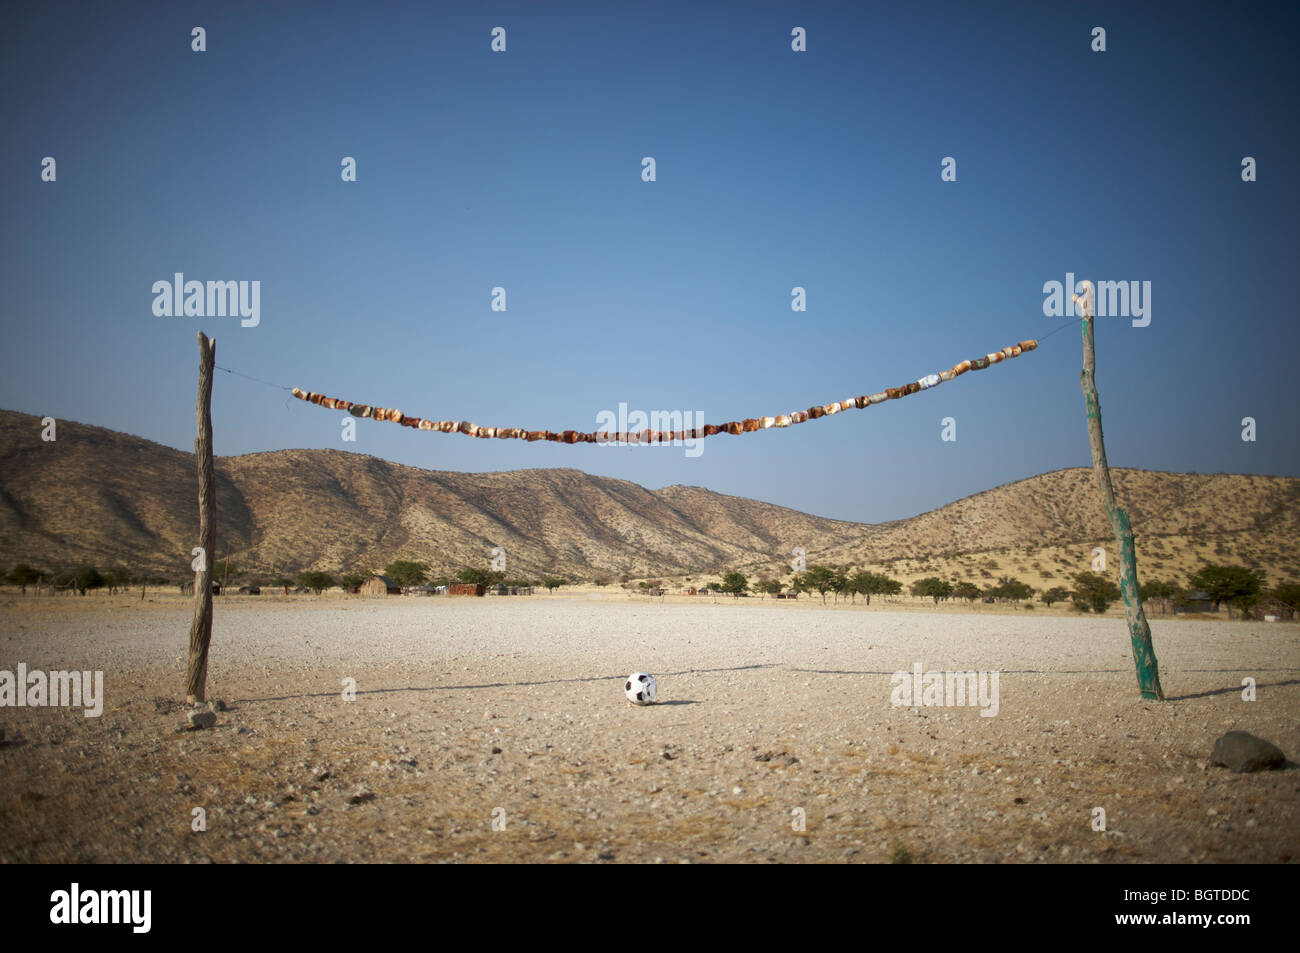 Rustic rural soccer field made of tree branches and cans, Epupa falls area, Kaokoland, Namibia - Stock Image